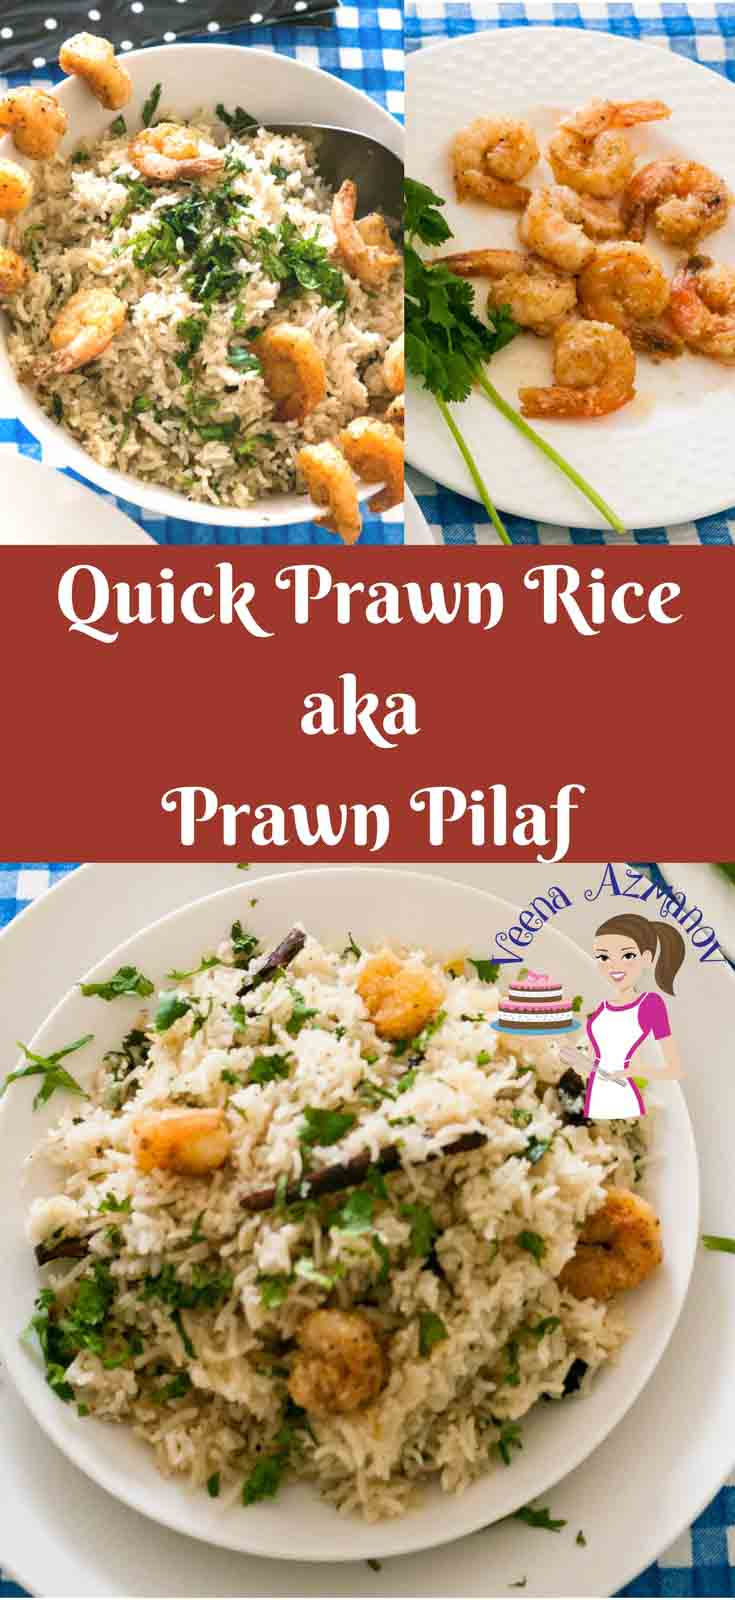 One of my time saving and fun meal is this quick prawn rice, it's the quickest meal you can make for your family in 20 minutes.  A delicious Indian Prawn Pilau recipe is a perfect one pot meal and a blessing to busy and working moms like me.